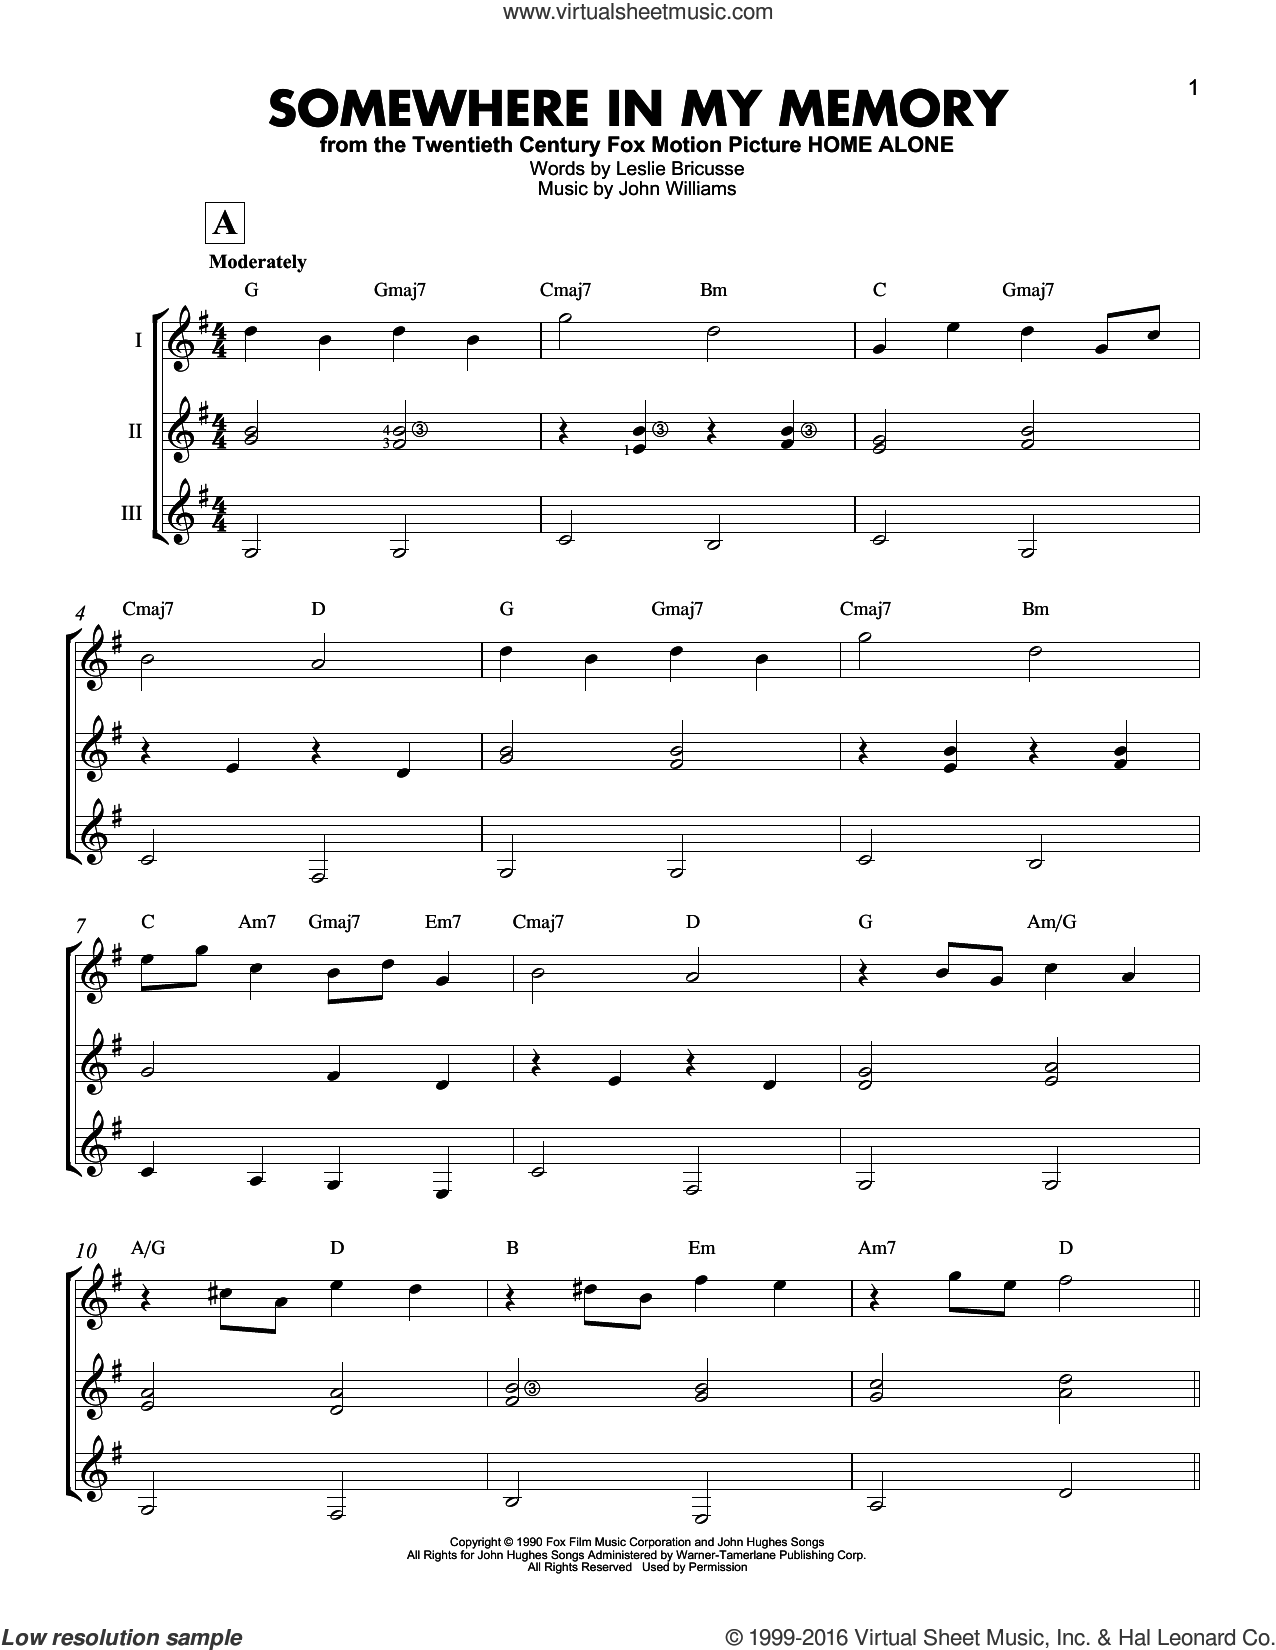 Somewhere In My Memory sheet music for guitar ensemble by Leslie Bricusse